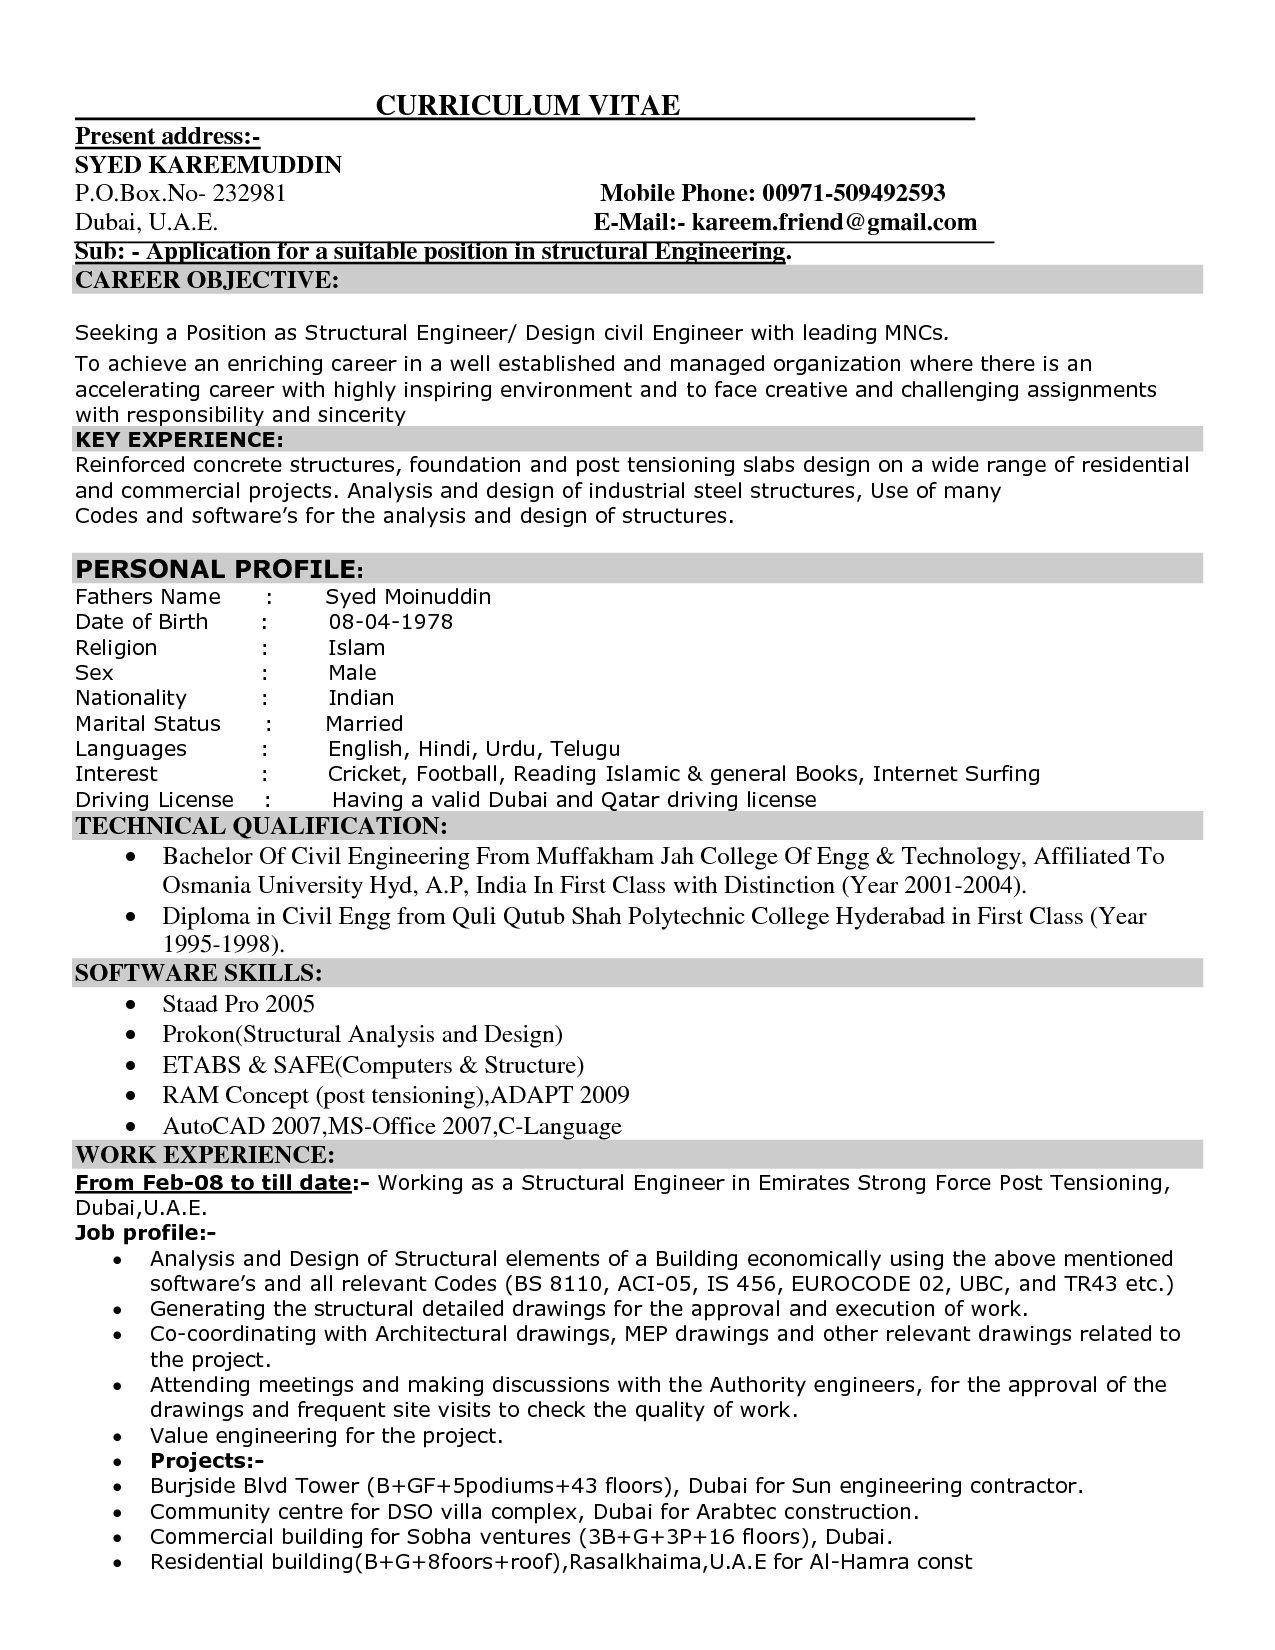 Civil Engineer Job Description Resume   Http://jobresumesample.com/349/